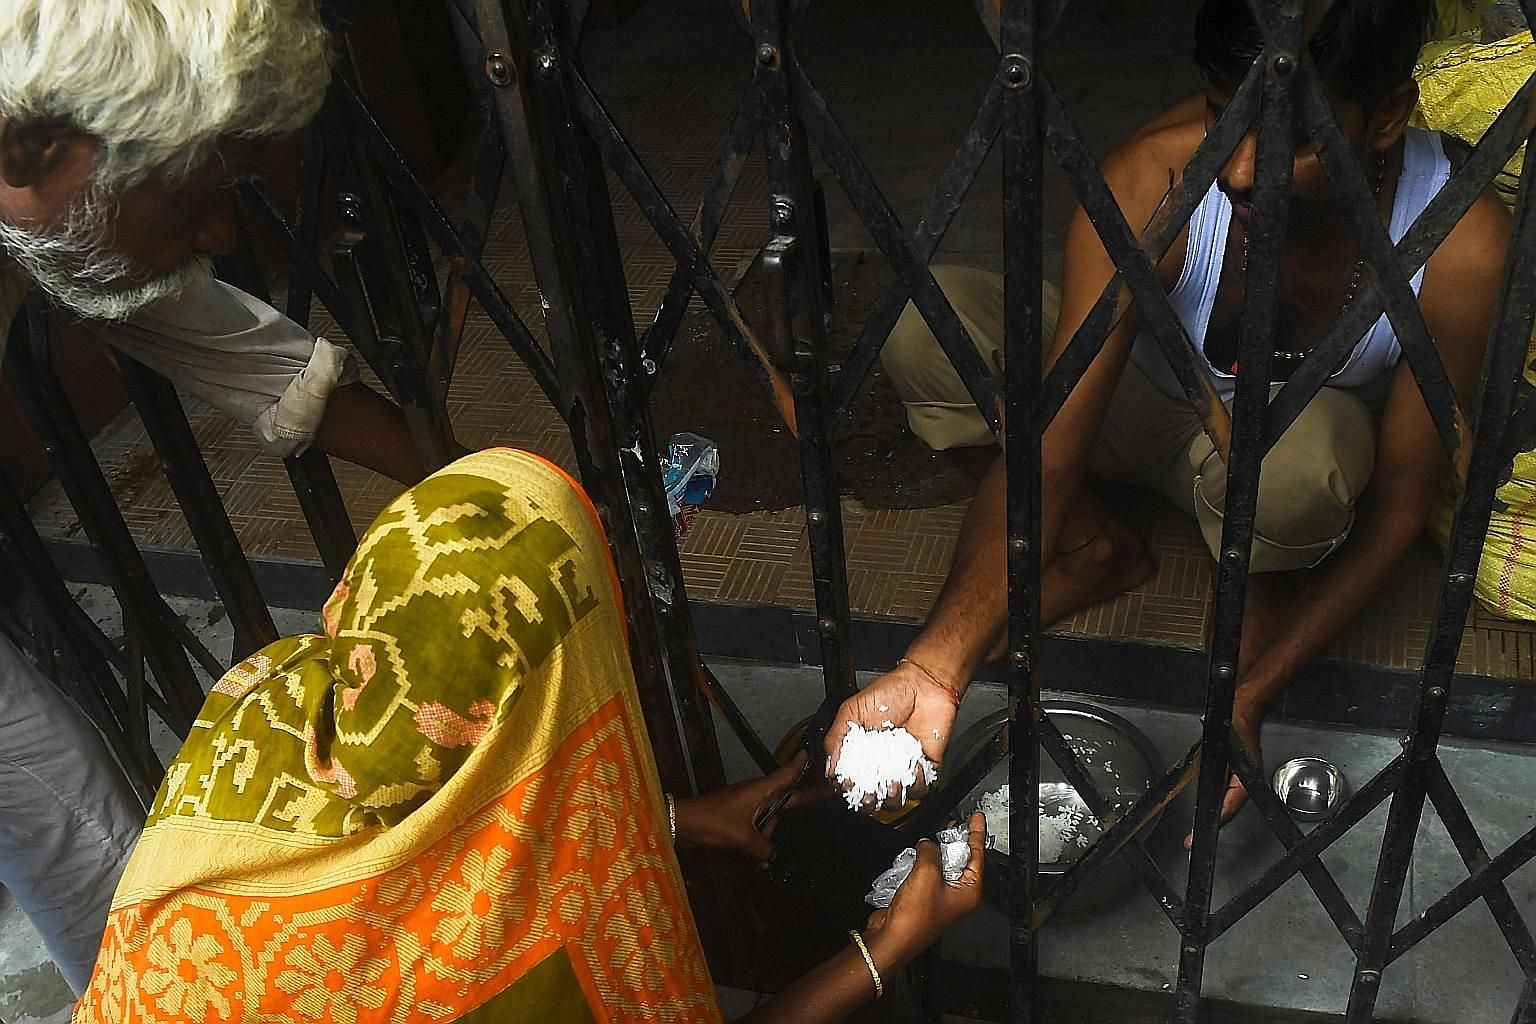 A man distributing food to homeless people in Kolkata, West Bengal, this week during a day-long lockdown imposed by the state government after a surge in coronavirus cases. PHOTO: AGENCE FRANCE-PRESSE